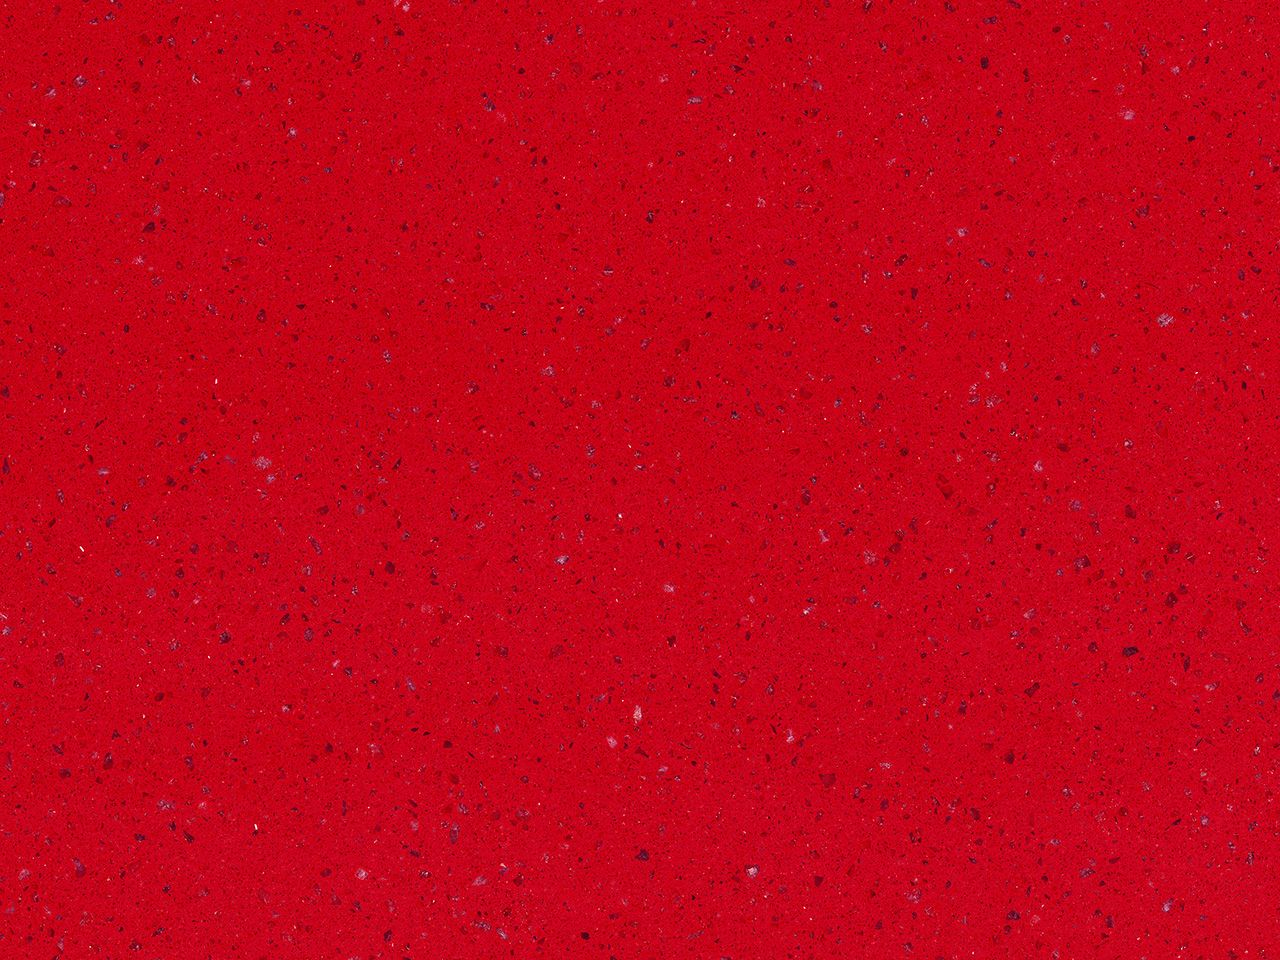 Cardigan Red Quartz Countertop Redo Kitchen Counter Tops